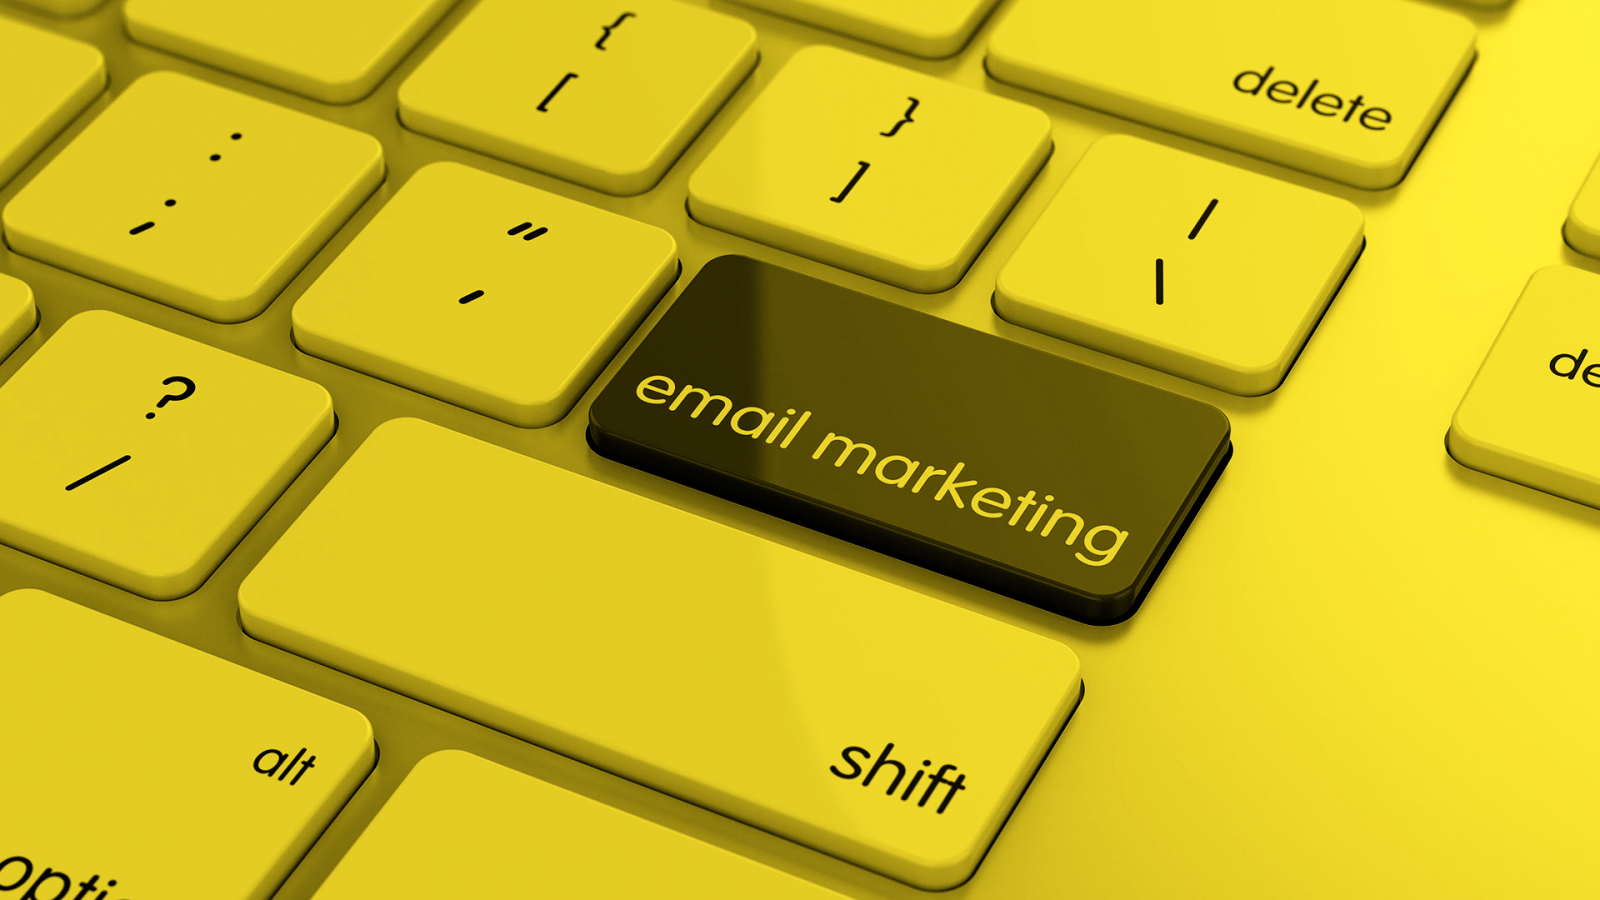 E-mail Marketing, Saiba como vender mais